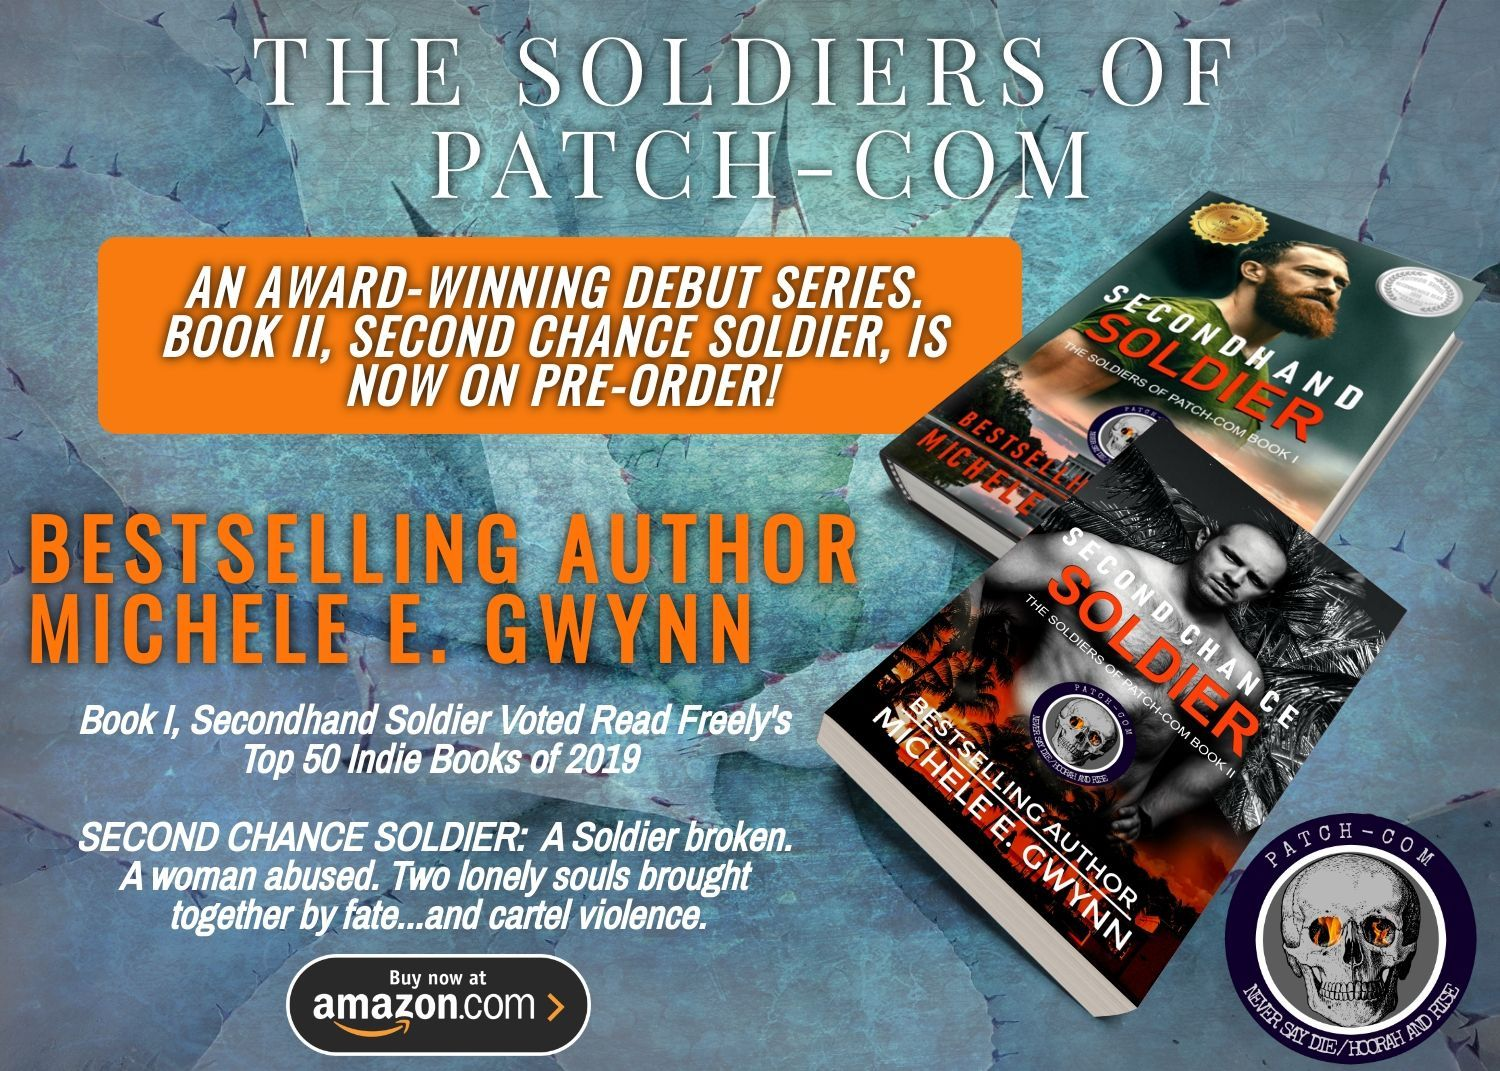 Available now on preorder the saga continues with the